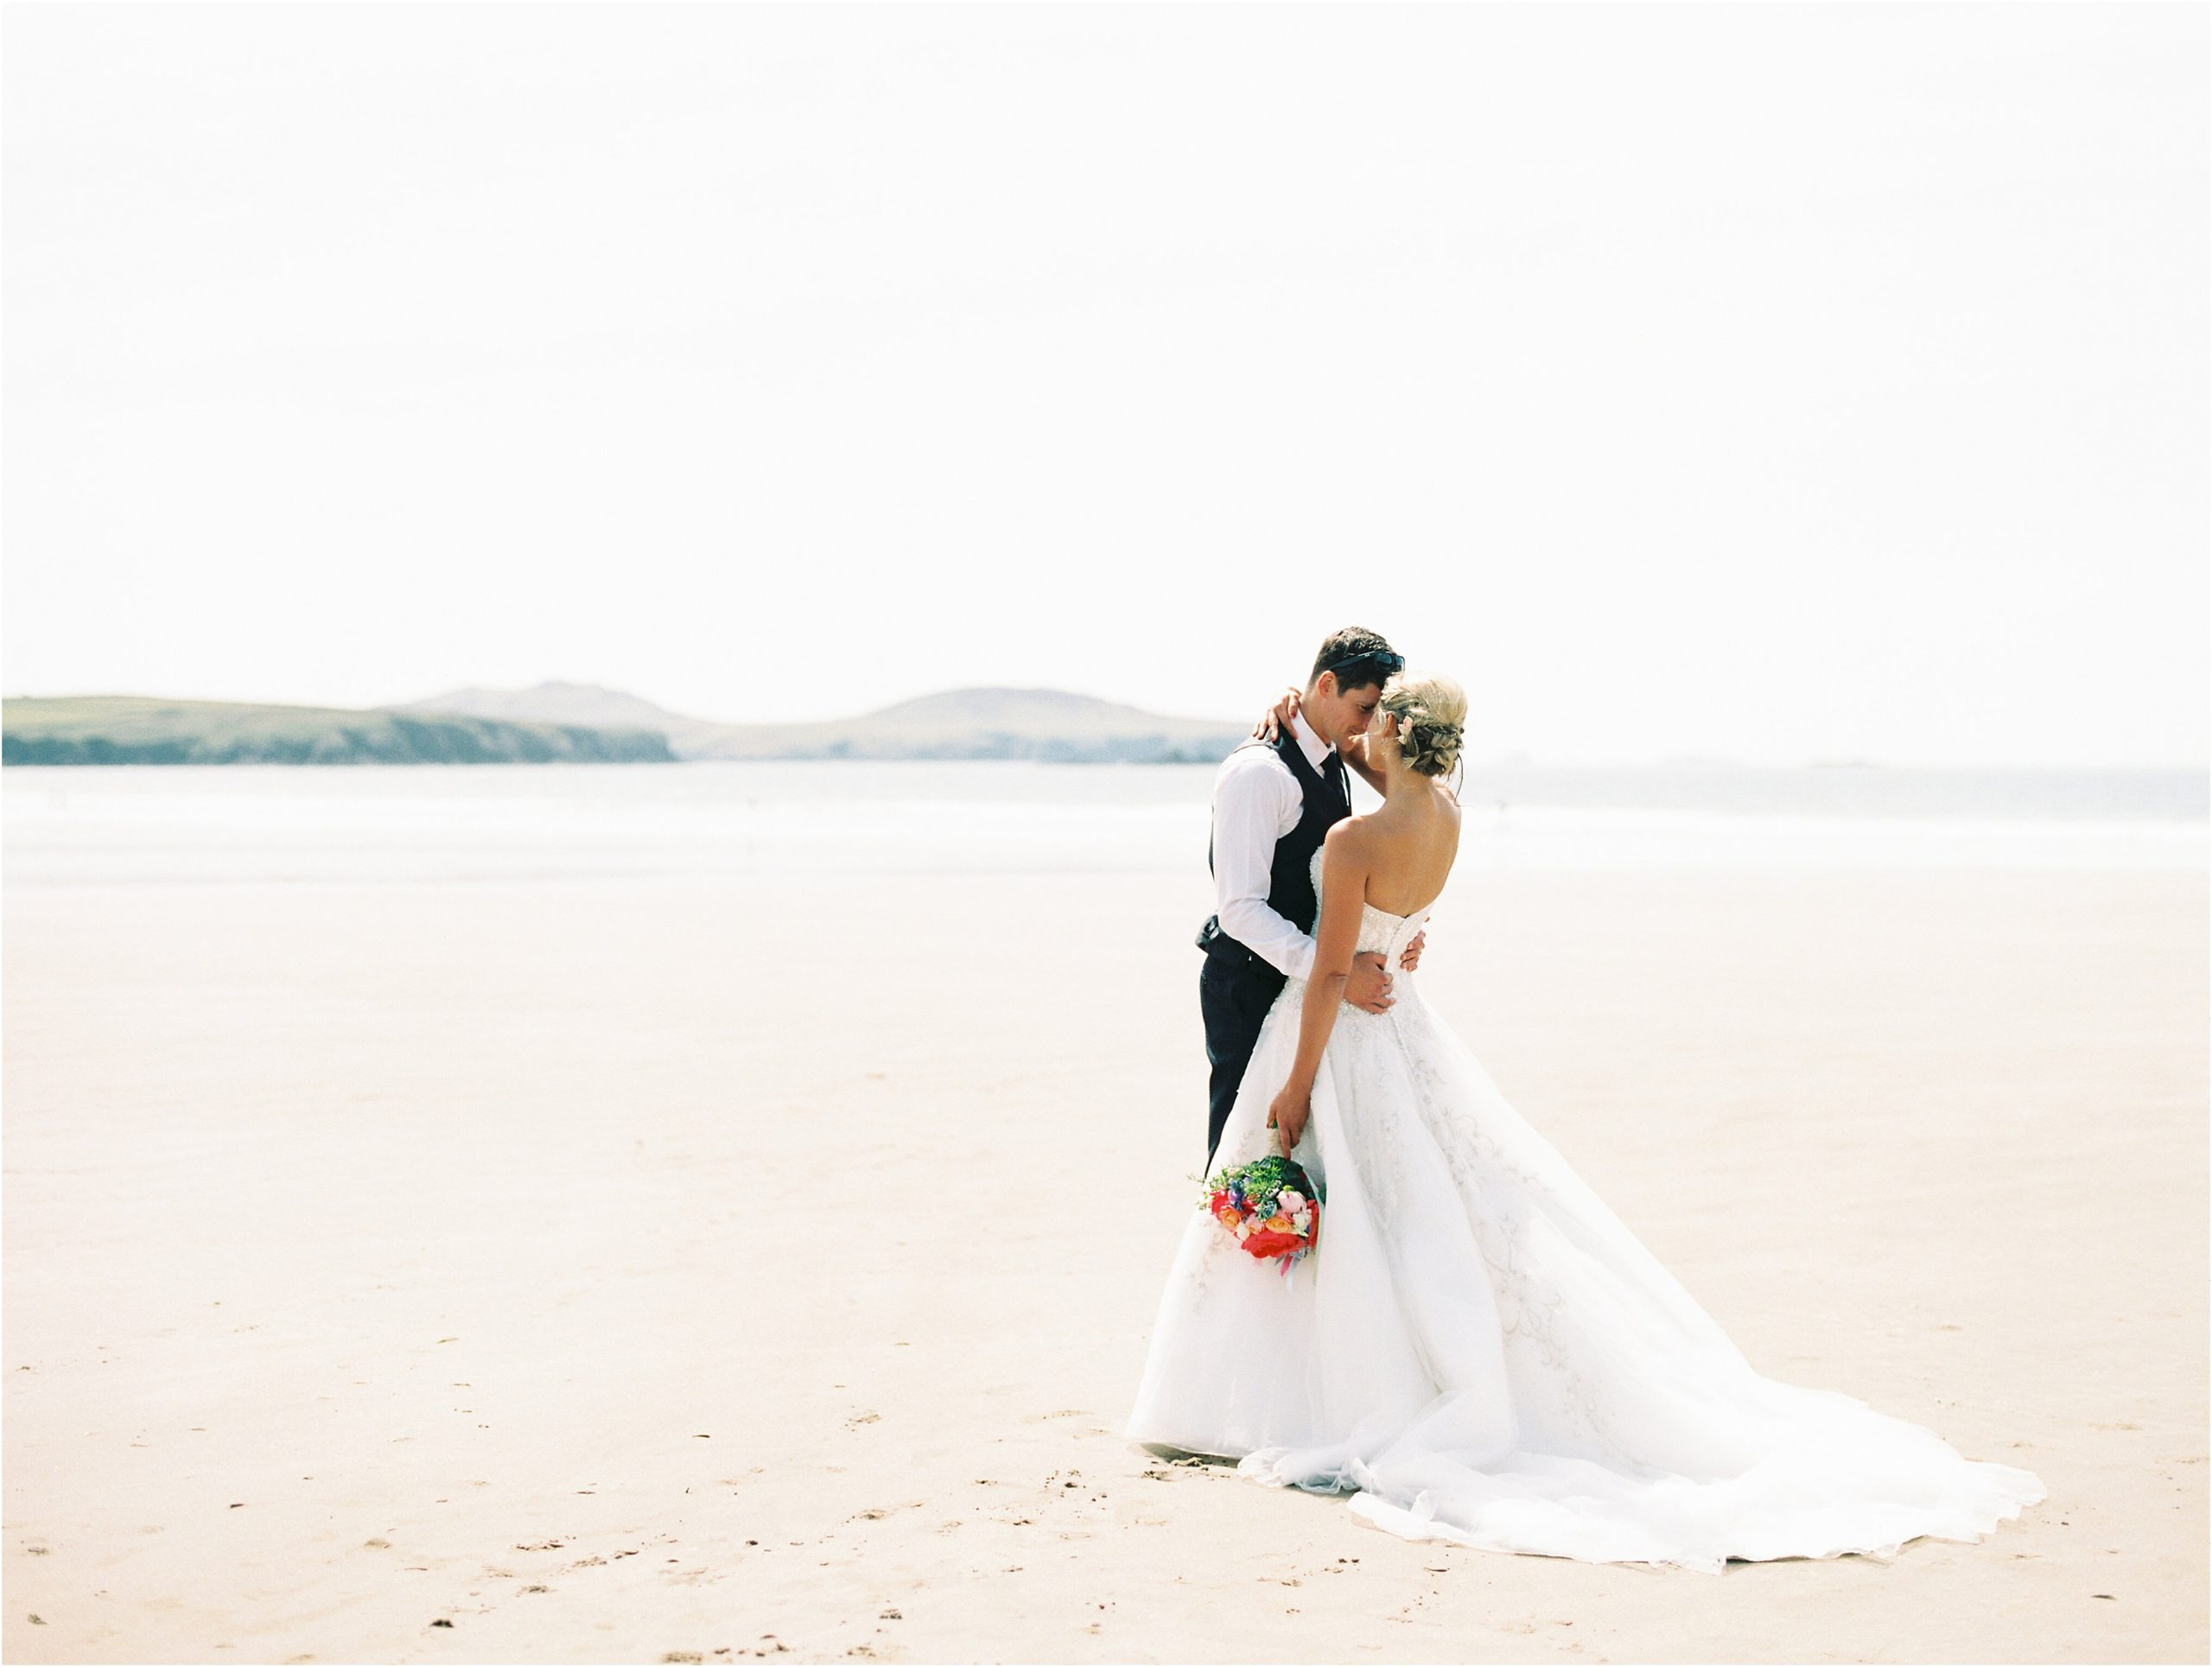 Wedding couple captured on film by UK wedding photographer Camilla Arnhold